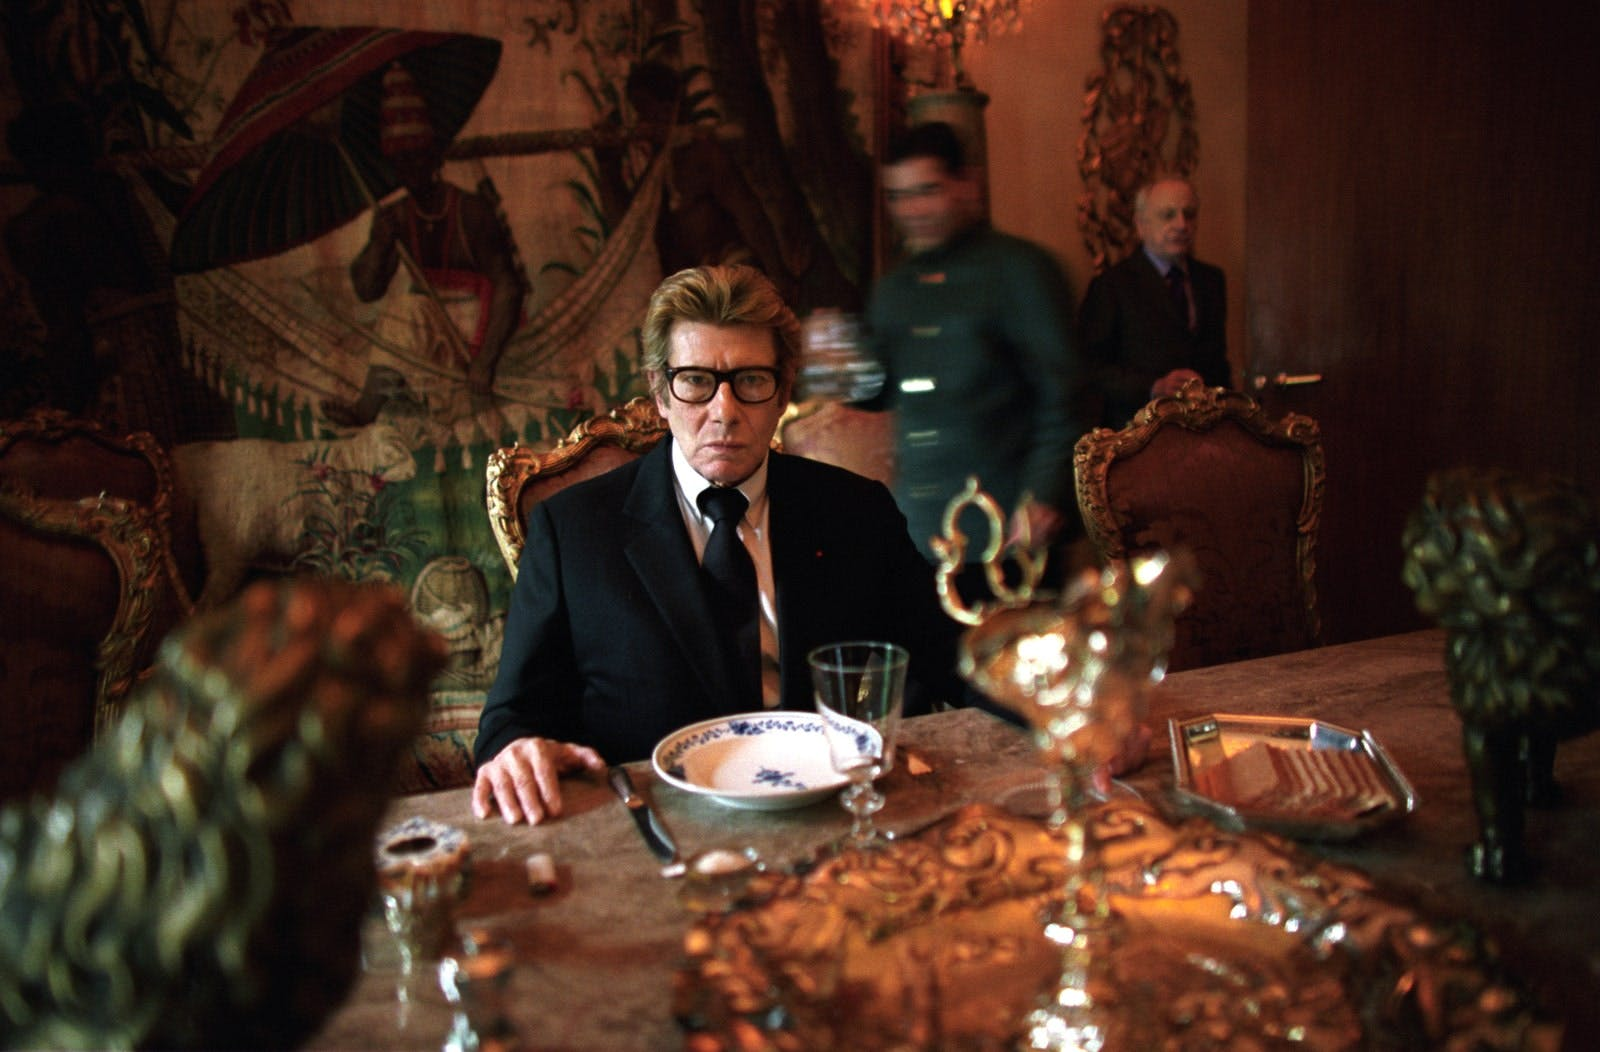 INSIDE YVES SAINT LAURENT'S PARIS APARTMENT